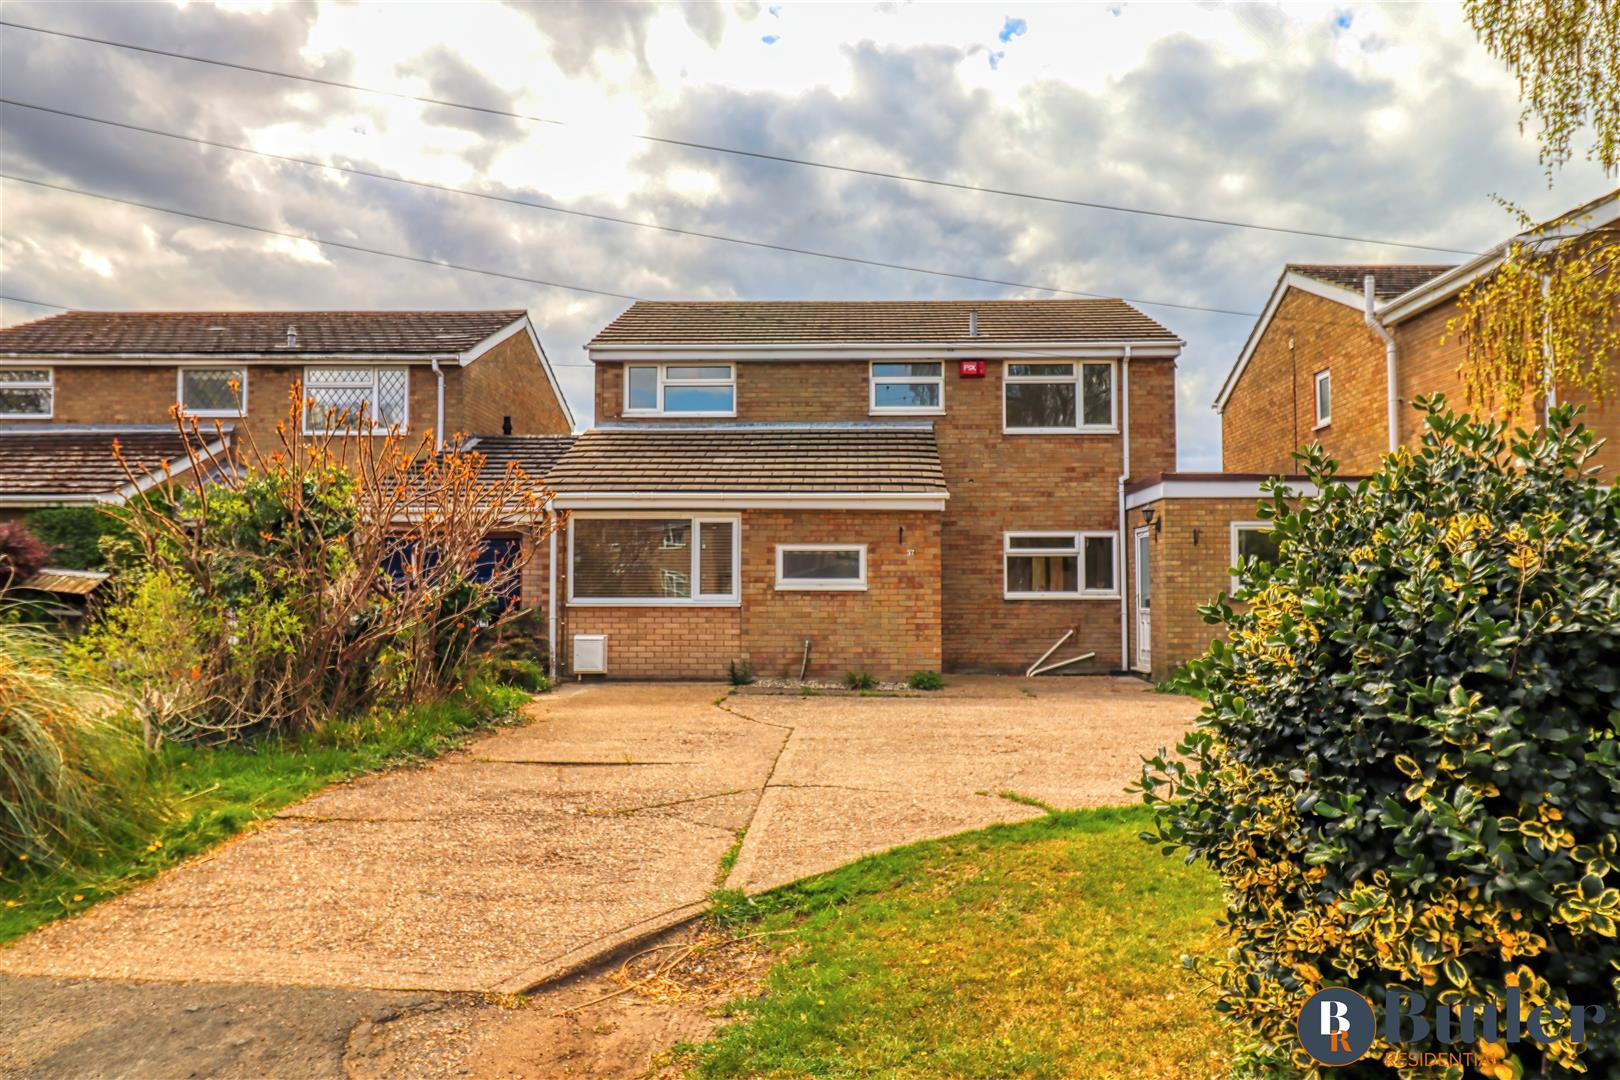 4 bed detached house for sale in Mill Road, St. Neots - Property Image 1